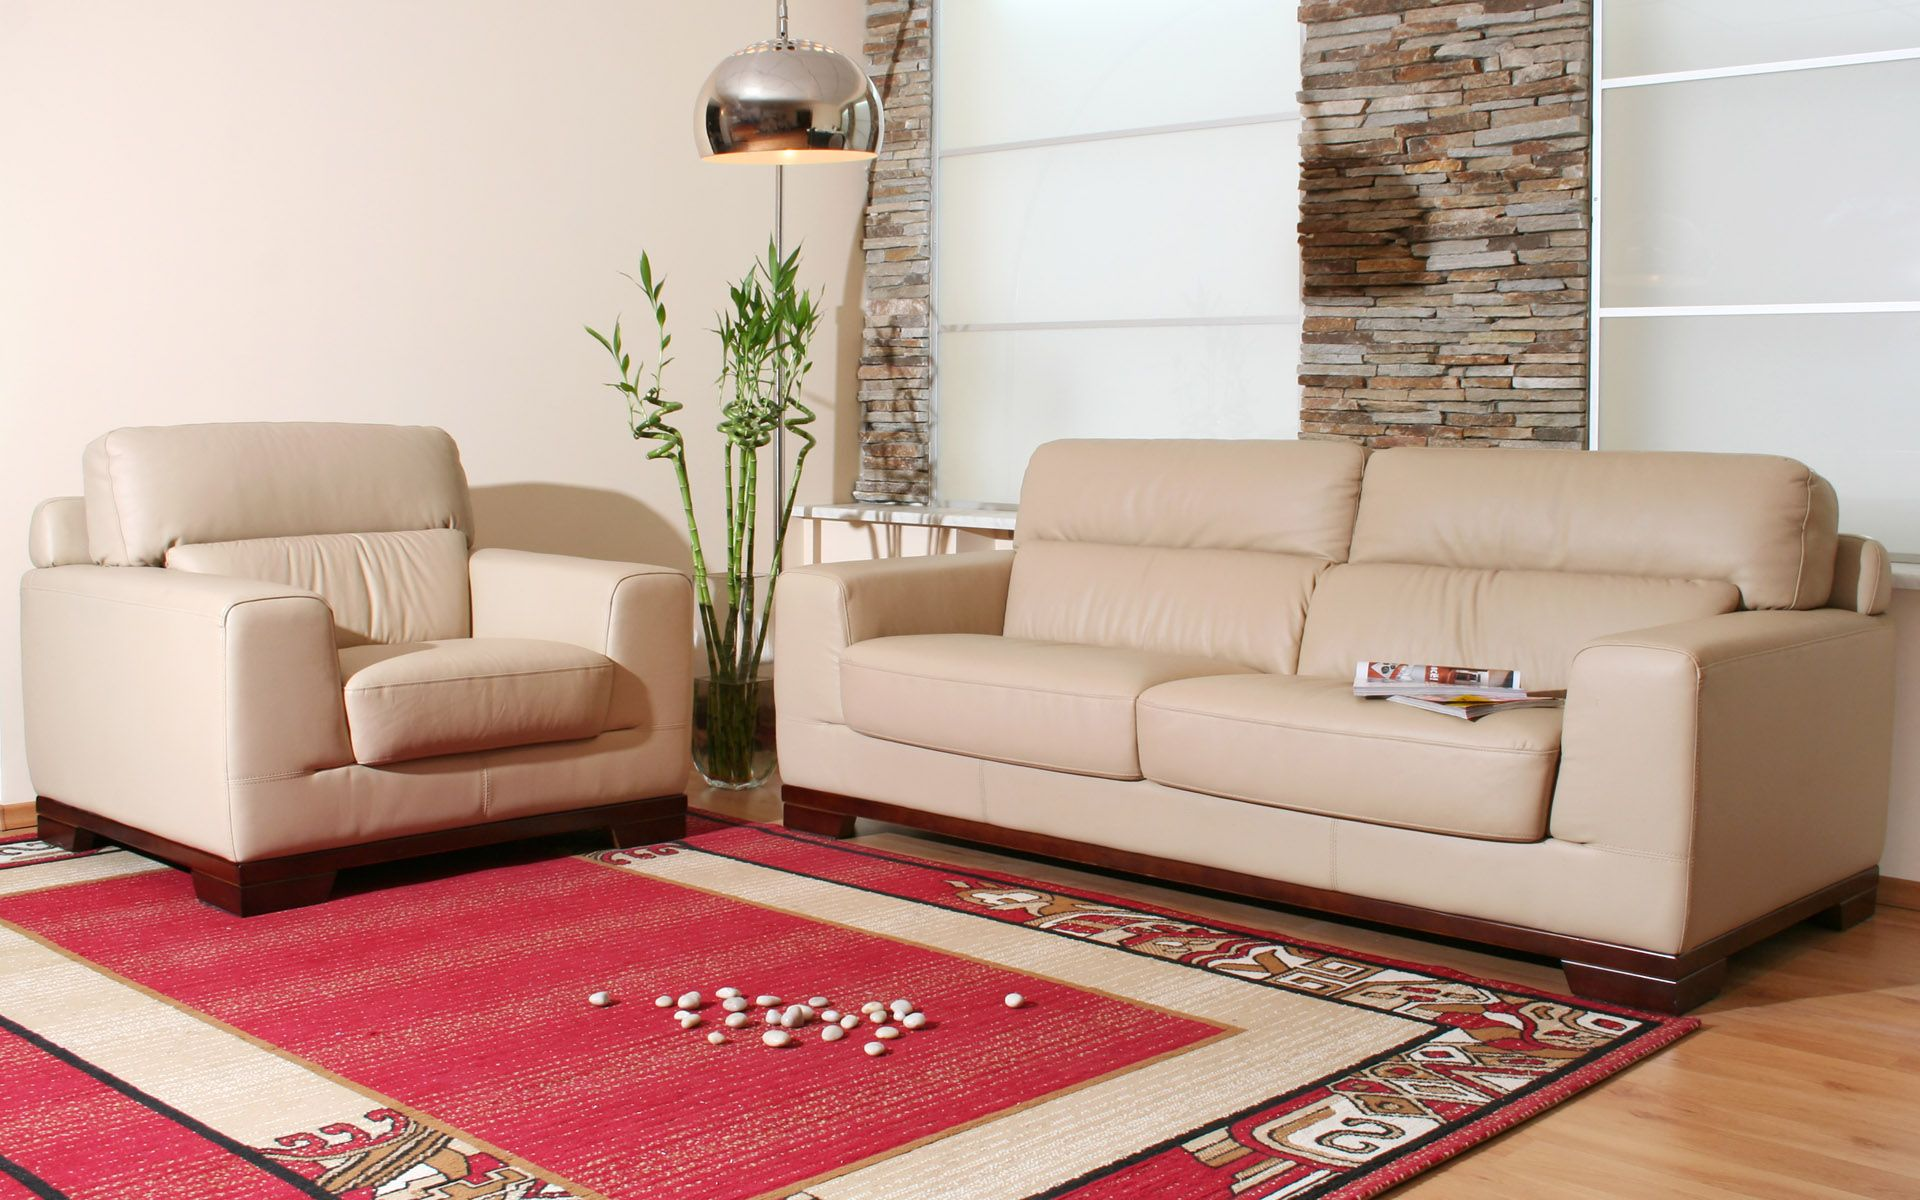 Carpet Living Room  Google Search  Area Rug Cleaning Services Delectable Carpet Designs For Living Room Decorating Inspiration